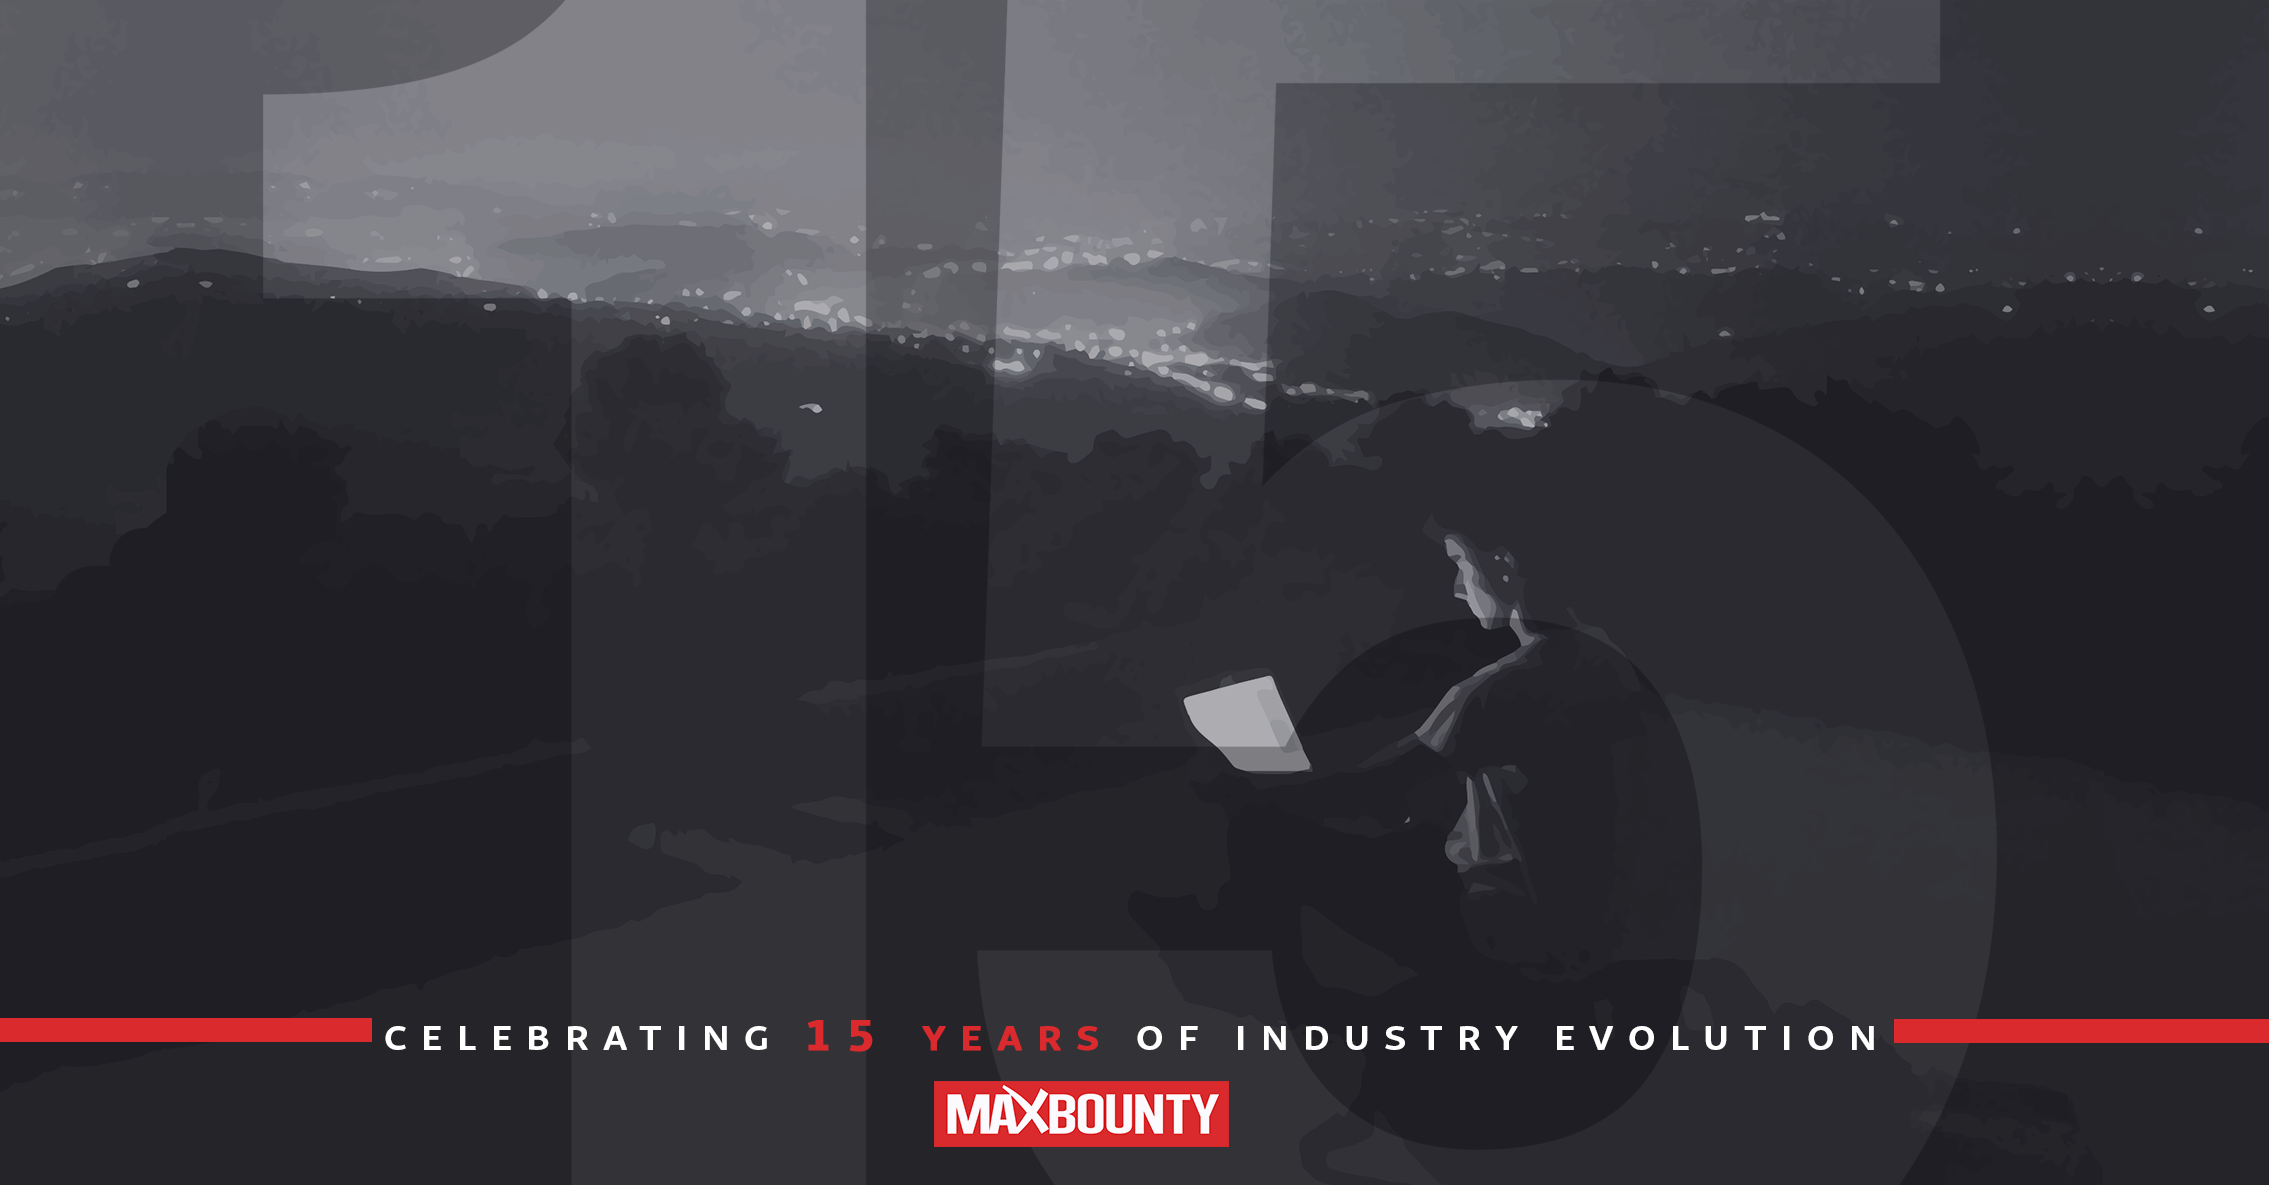 MaxBounty Celebrating 15 Years as a Network in 2019